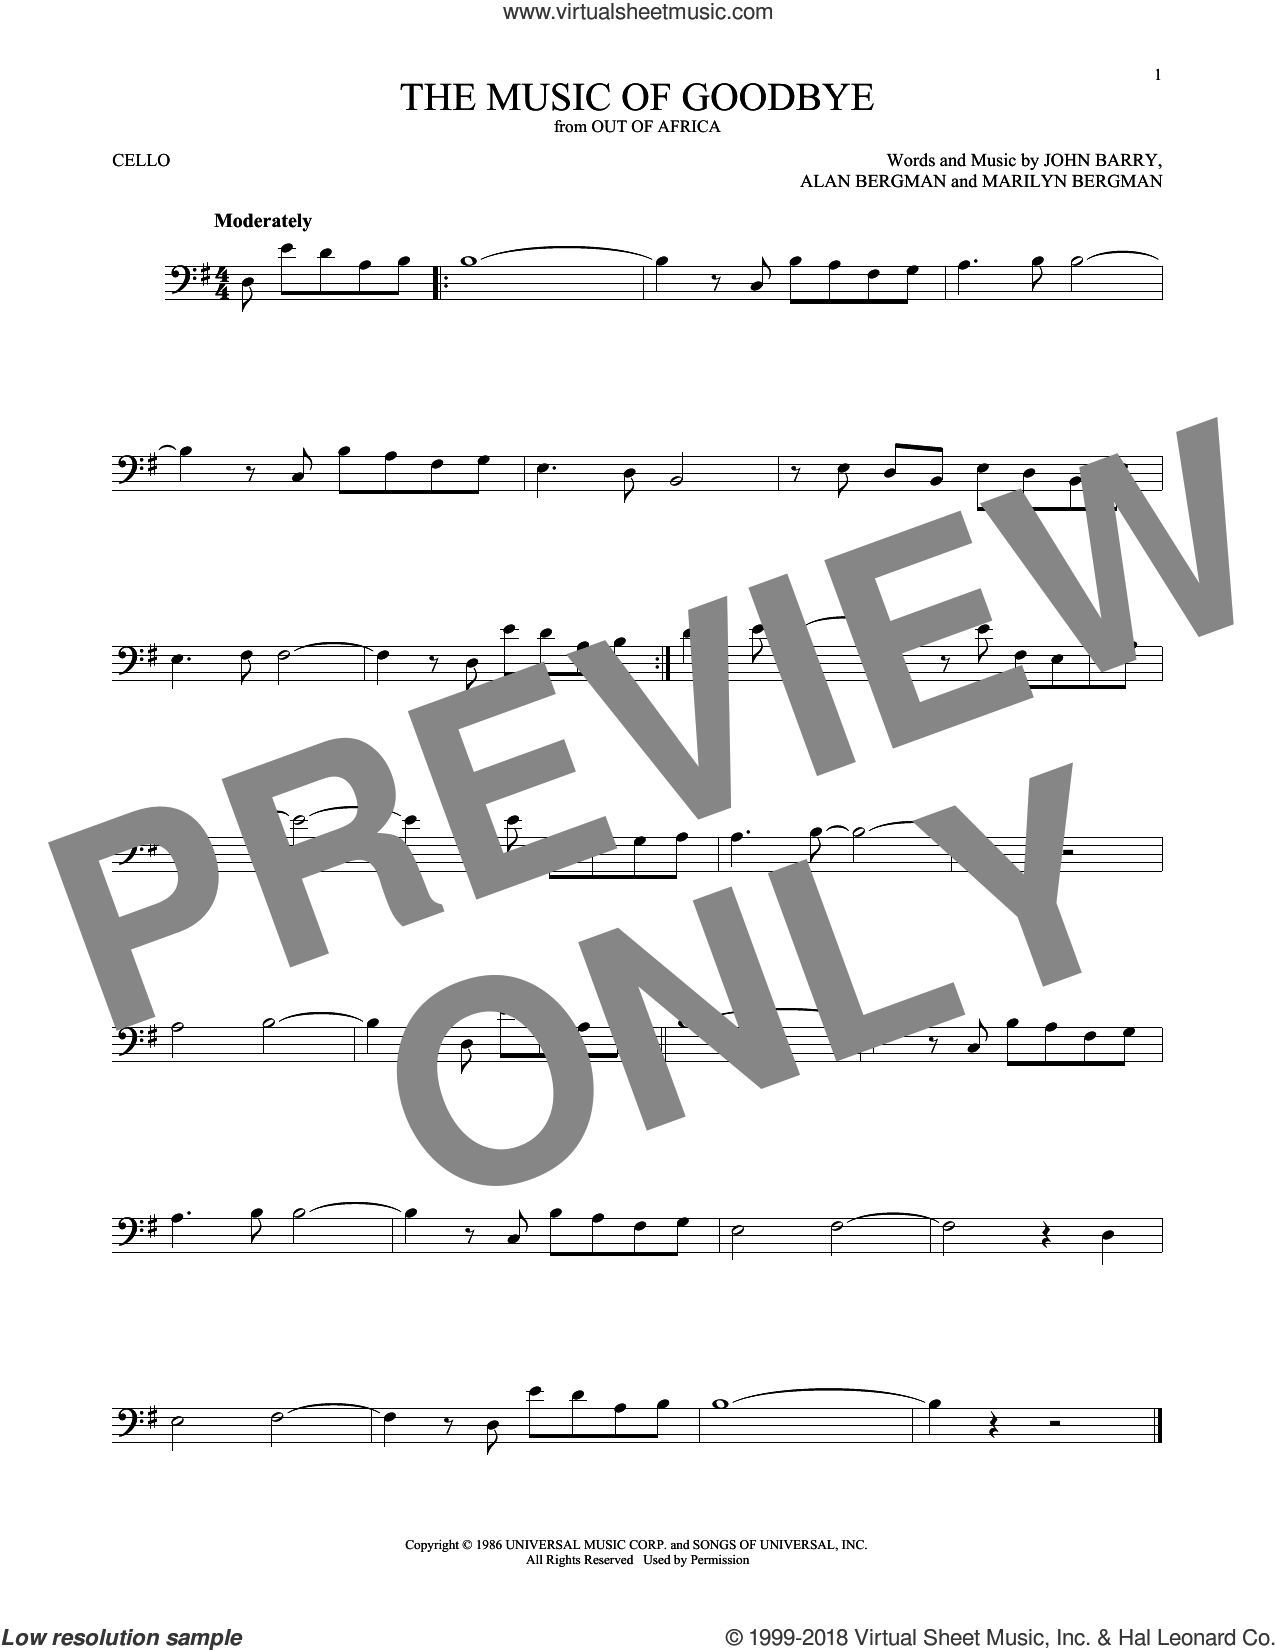 The Music Of Goodbye sheet music for cello solo by John Barry, Alan Bergman and Marilyn Bergman, intermediate skill level